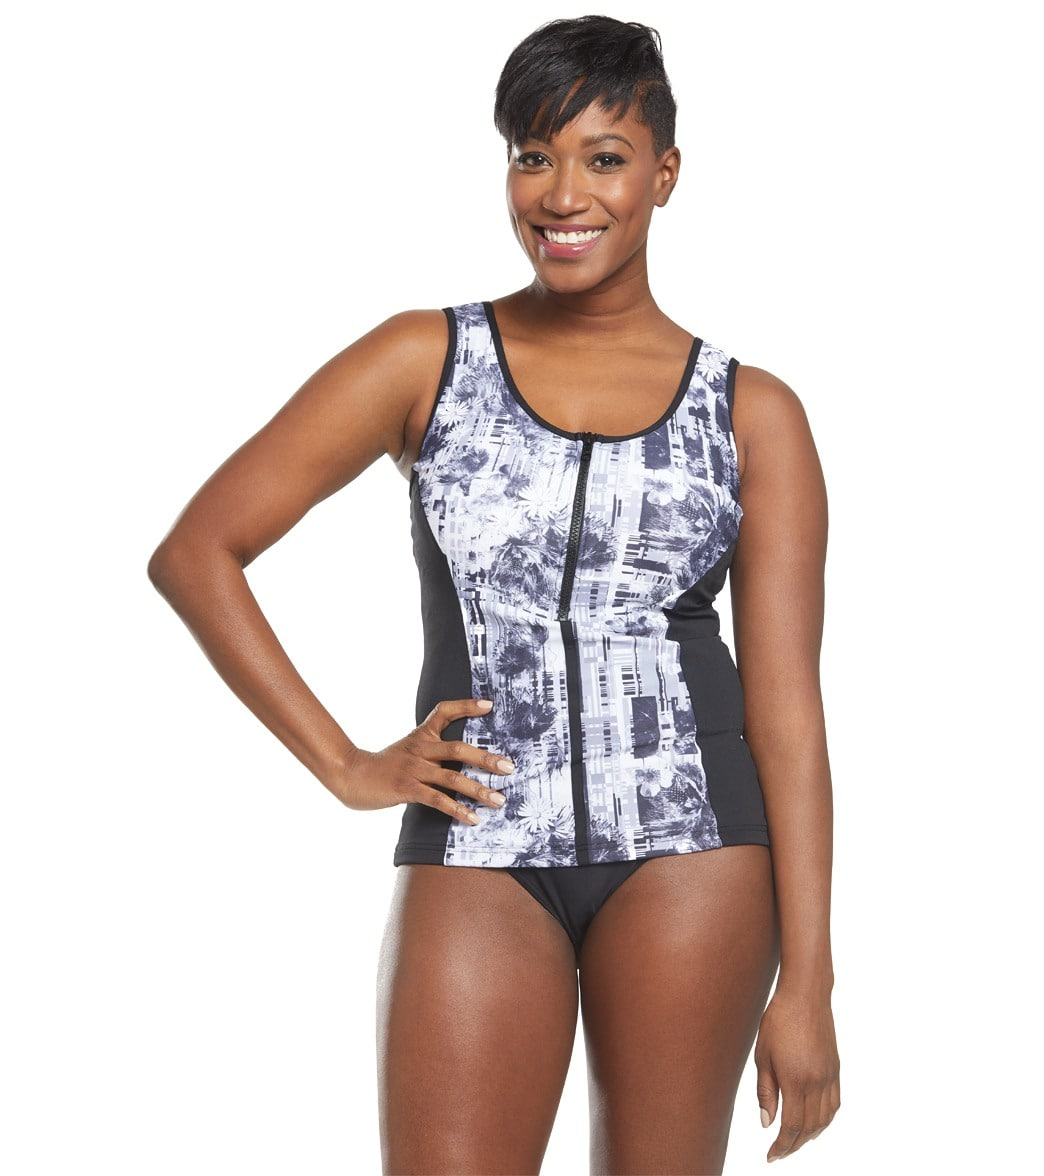 1887407a7f6aa Funkita Women s Garden Mist Zip Front Panelled Tankini Swimsuit Top at  SwimOutlet.com - Free Shipping